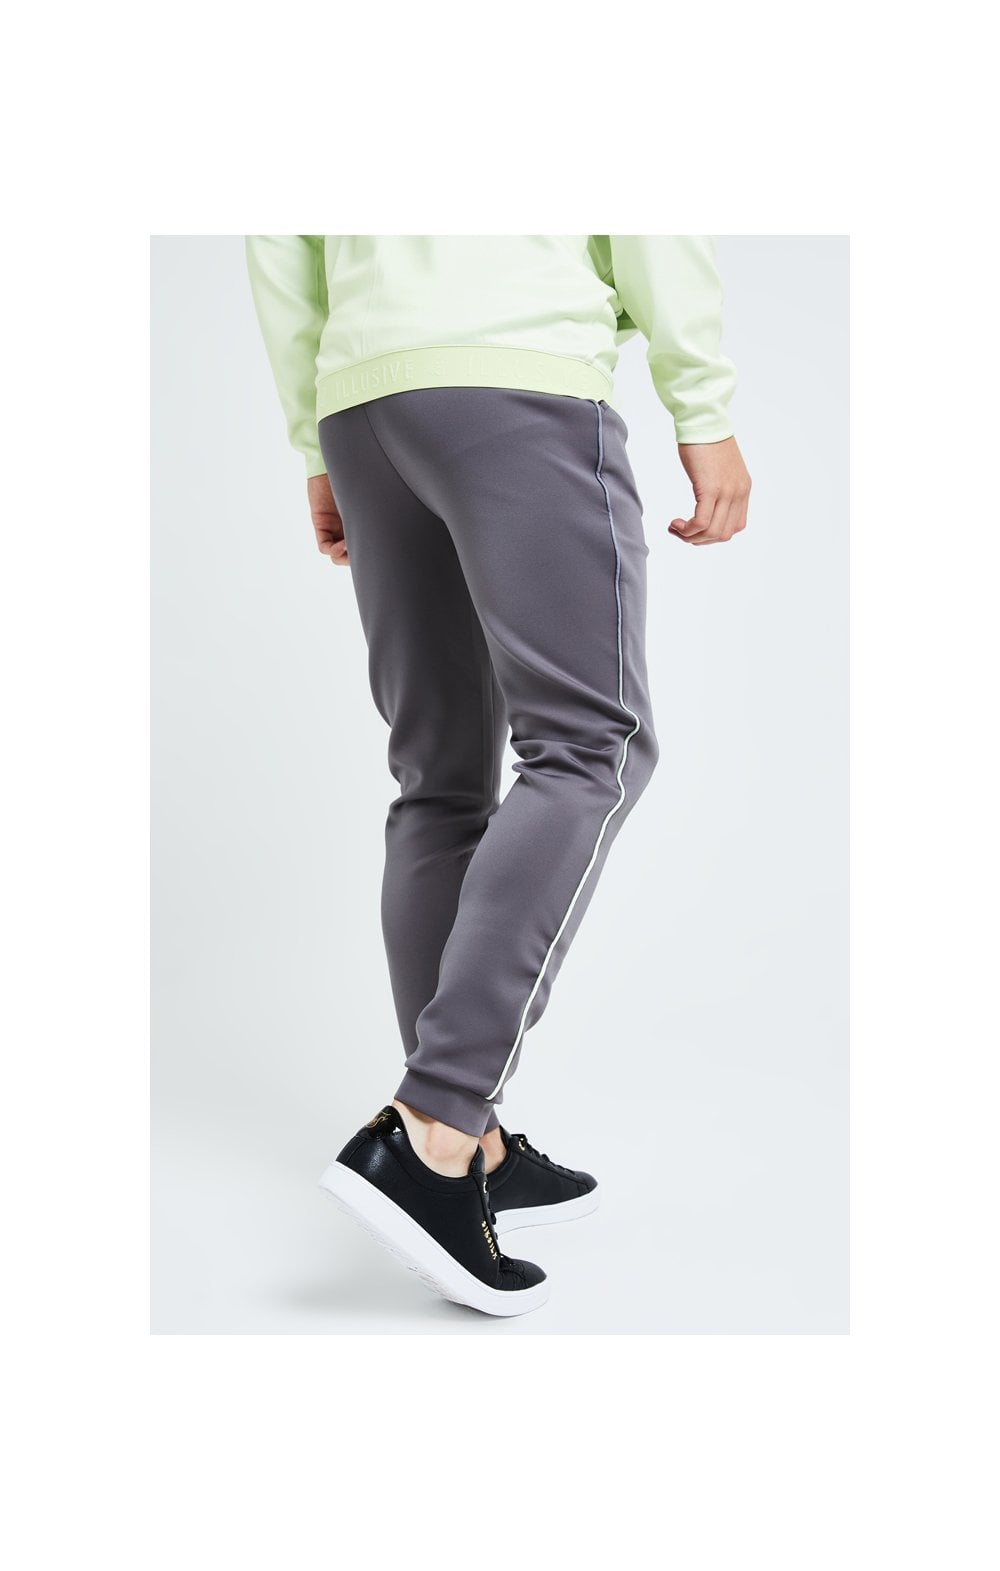 Illusive London Blaze Fade Piping Jogger - Dark Grey & Lime (3)